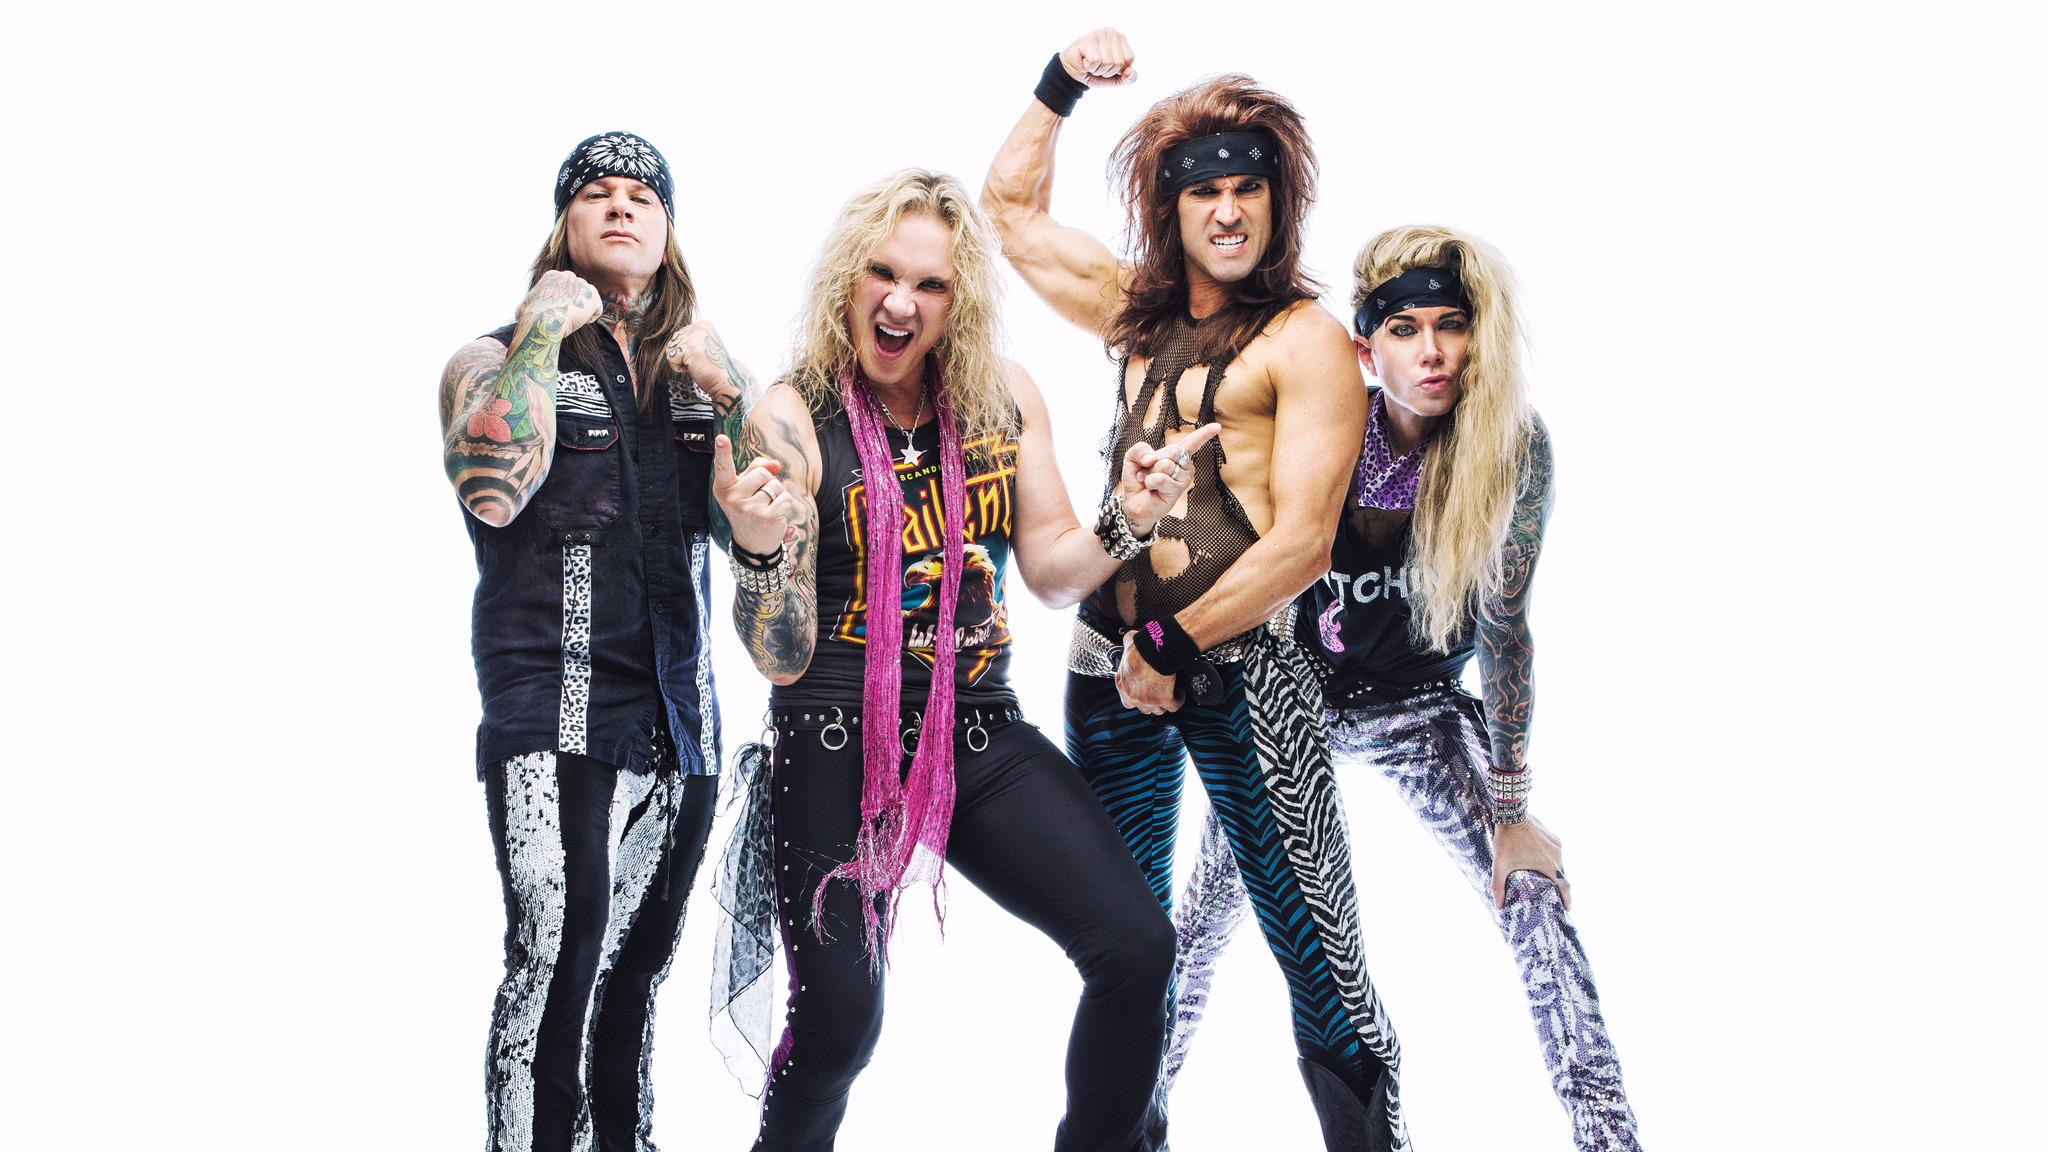 KCAL 96.7 Presents Steel Panther